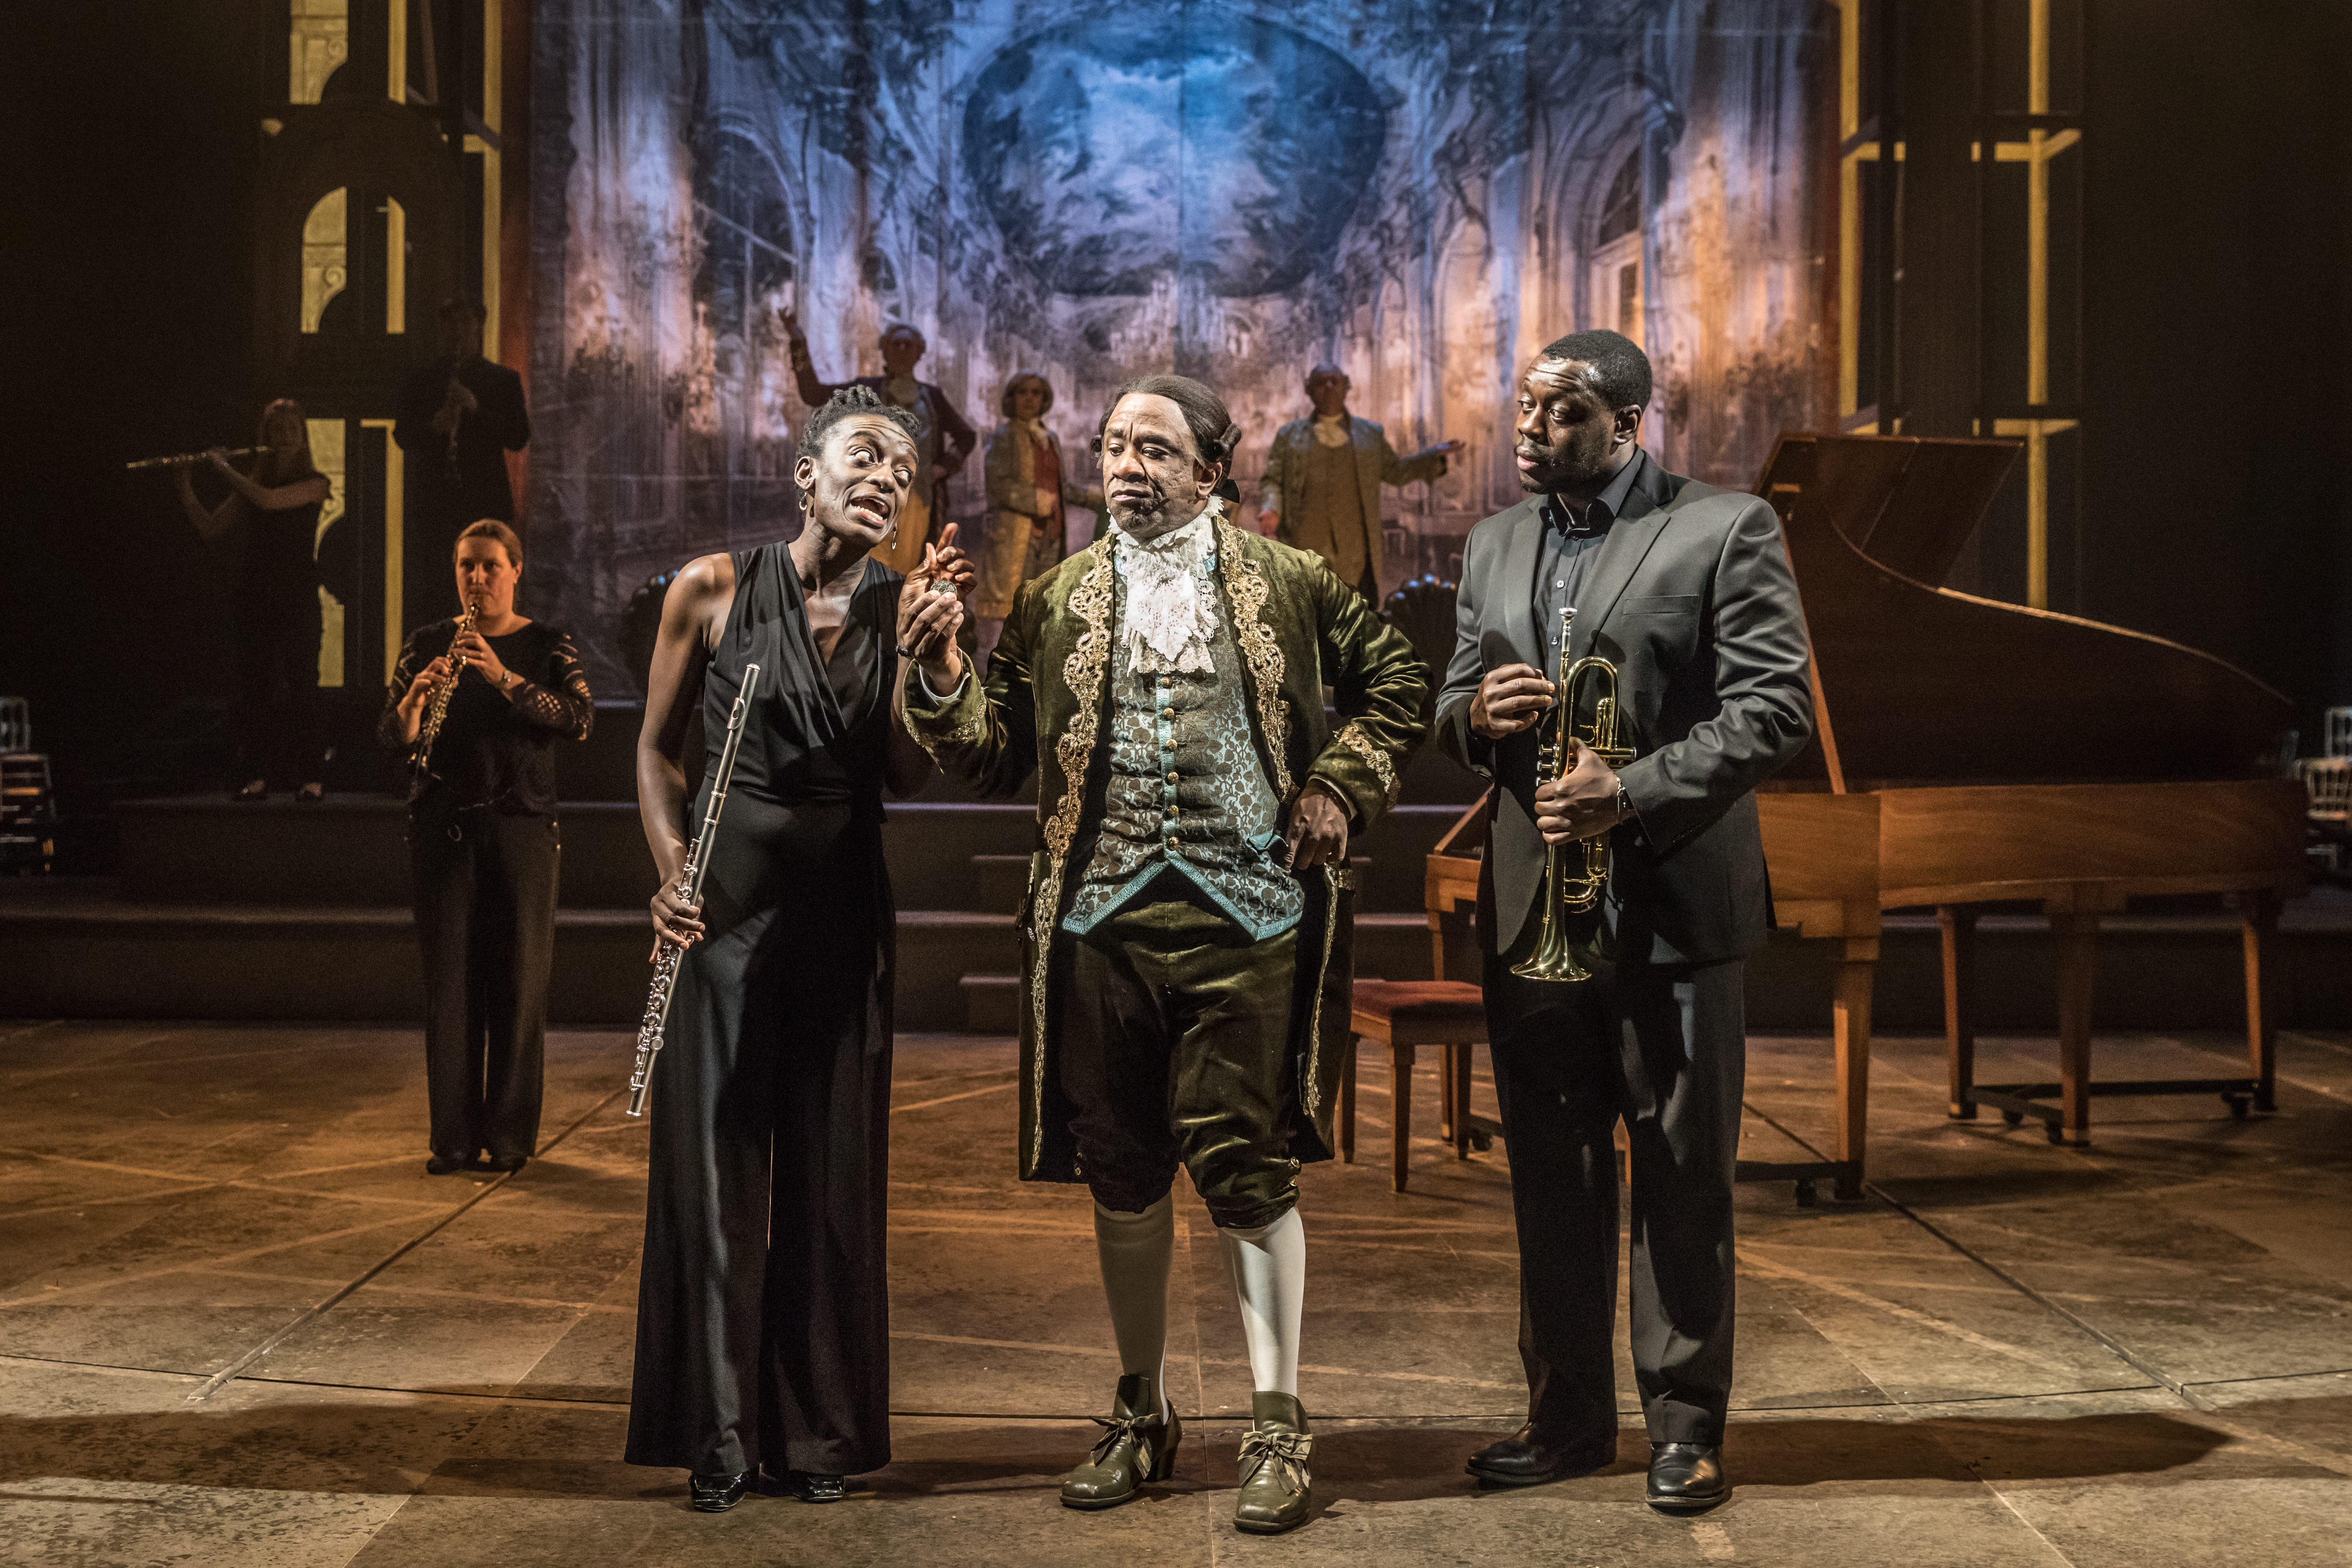 Sarah Amankwah as Venticelli, Lucian Msamati as Antonio Salieri and Ekow Quarty as Venticelli in Amadeus at the National Theatre (c) Marc Brenner